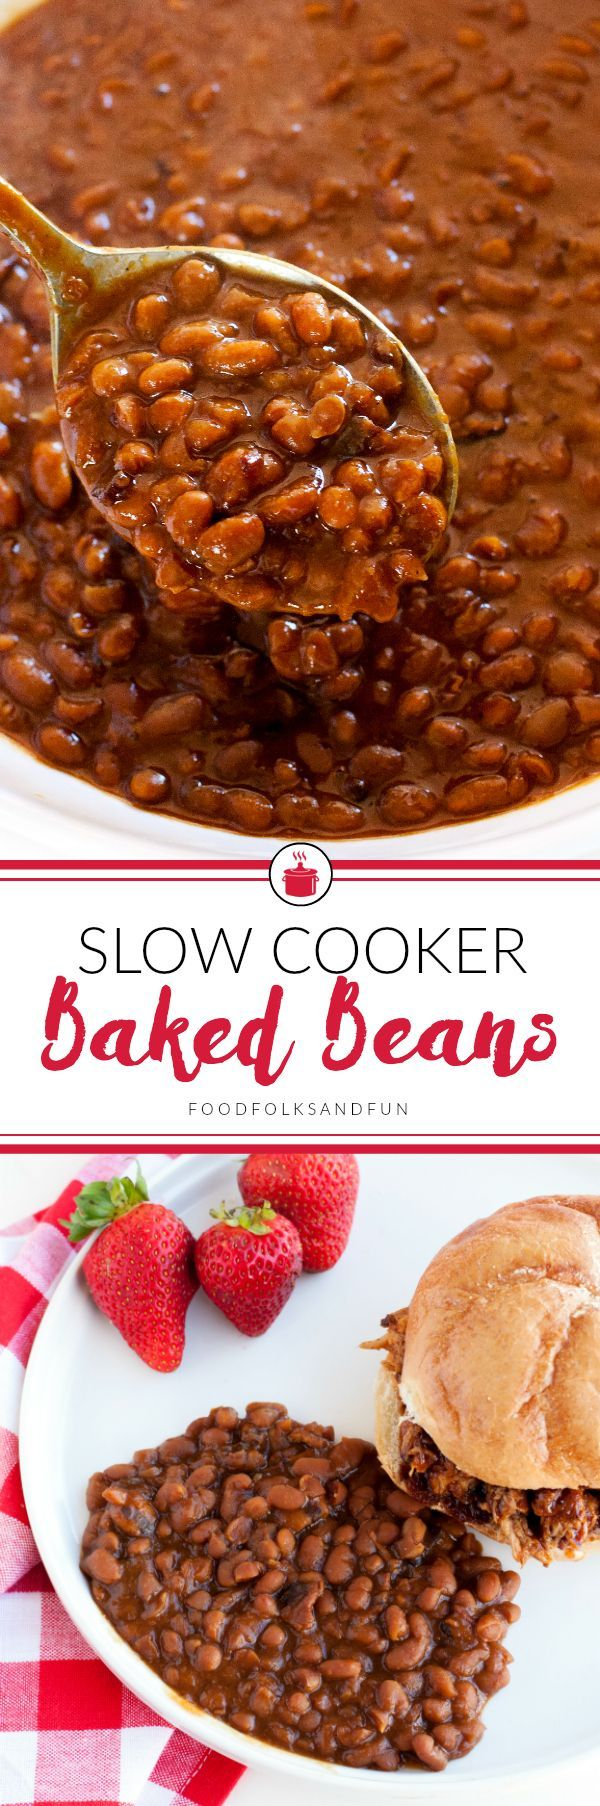 This Slow Cooker Boston Baked Beans recipe is everything baked beans should be: thick, saucy, savory with a touch of sweet. Come see how I made the classic Boston Baked Beans recipe easier by making it in the slow cooker!   Best Baked Beans   Easy Baked B